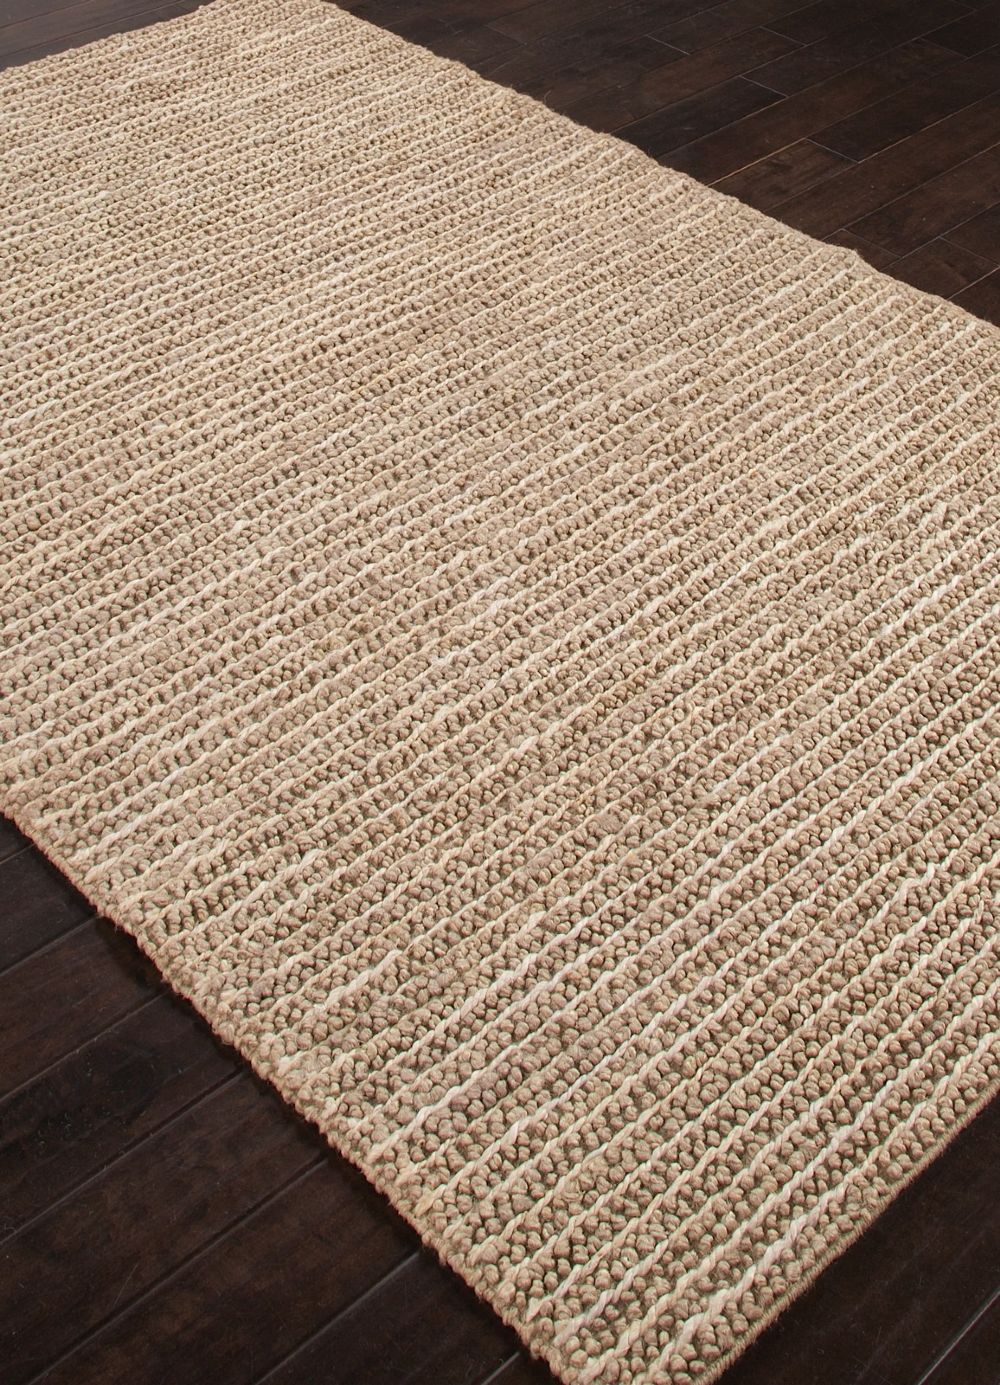 jaipur naturals seaside natural fiber area rug collection